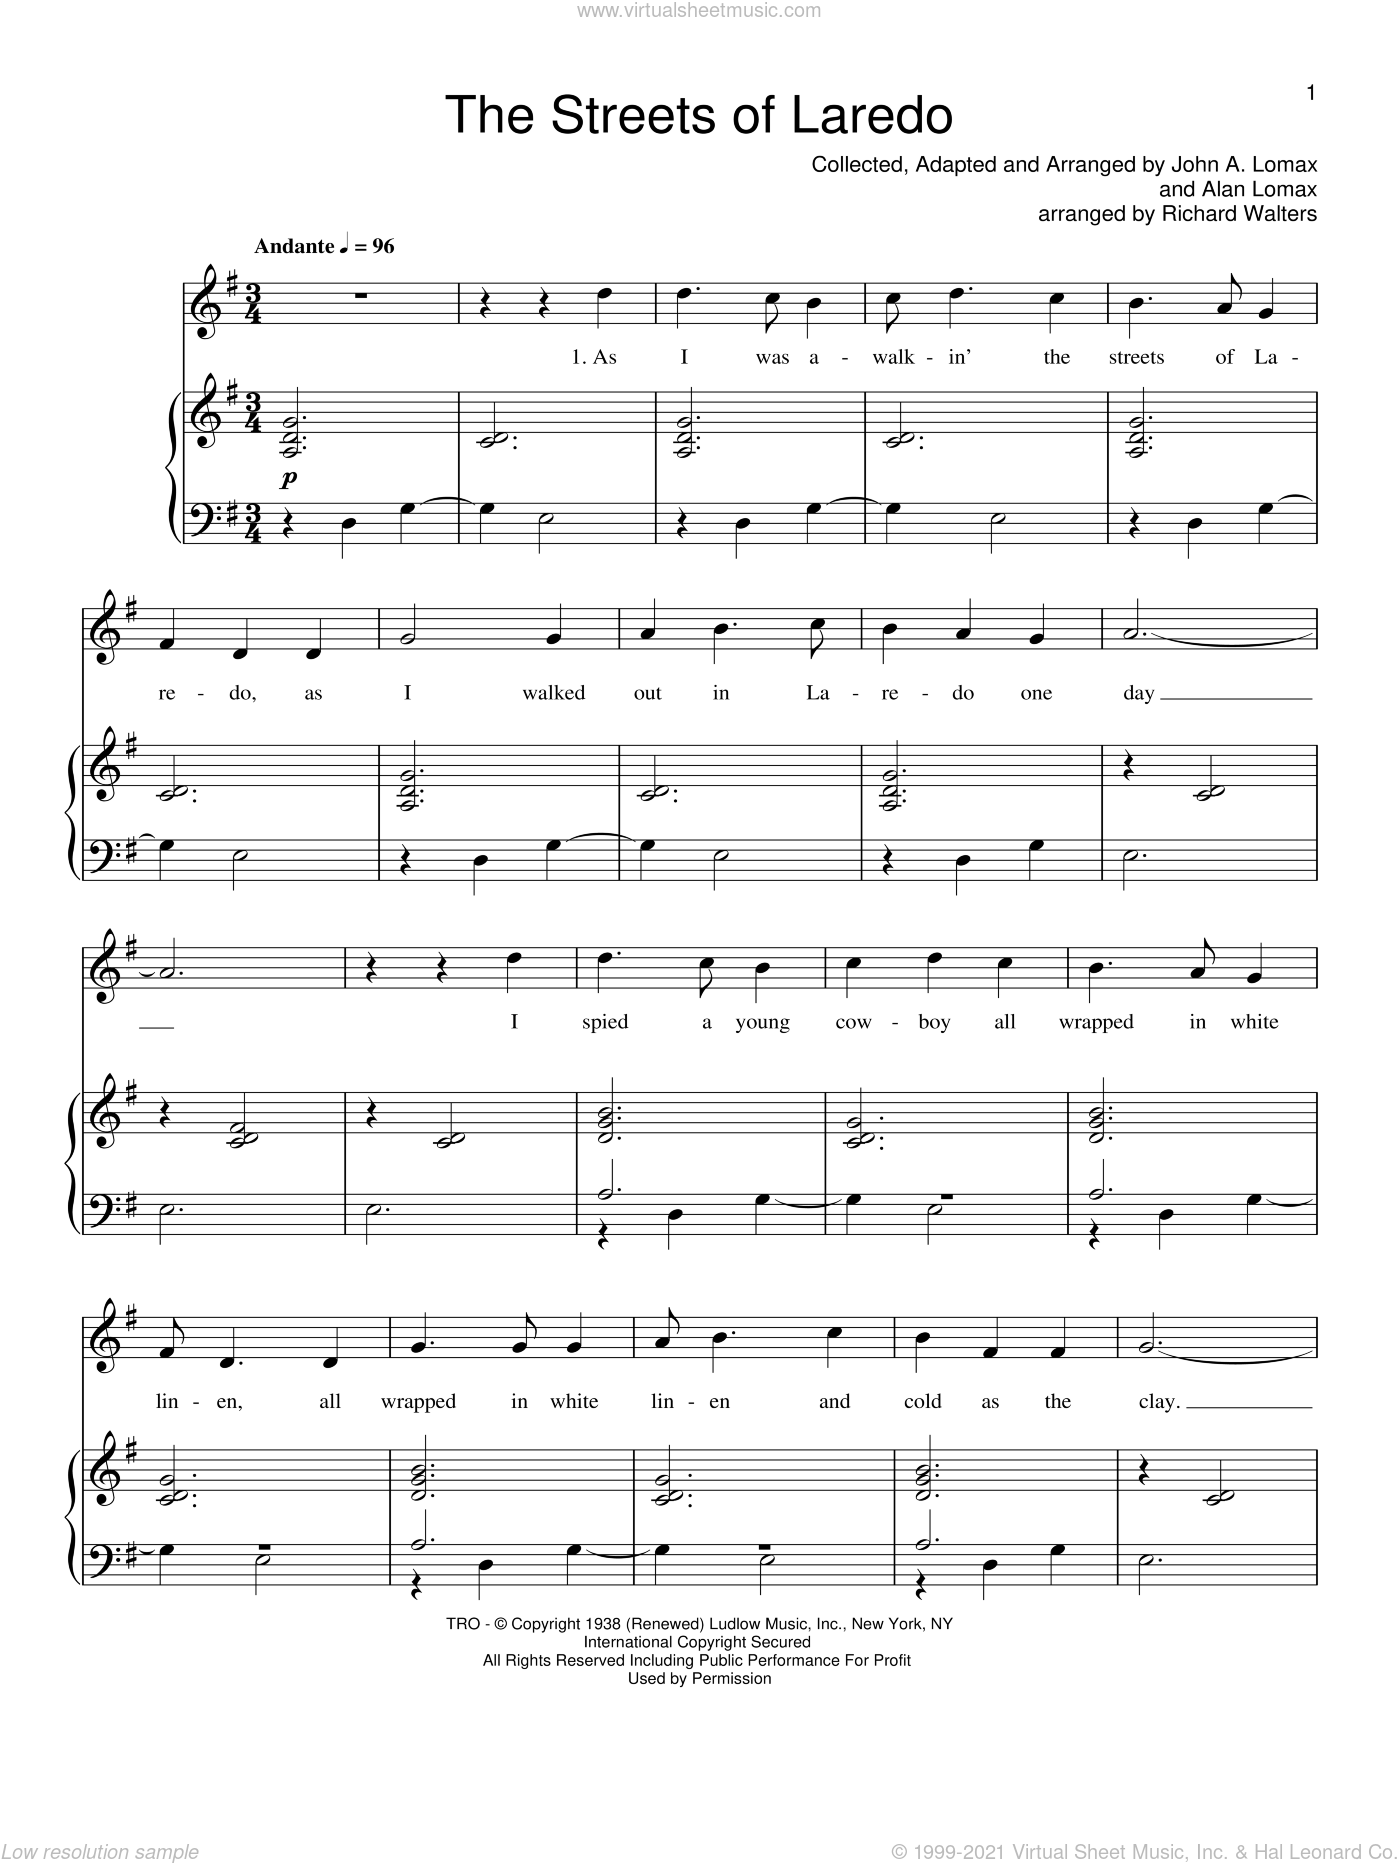 The Streets Of Laredo sheet music for voice, piano or guitar  and Johnny Cash. Score Image Preview.